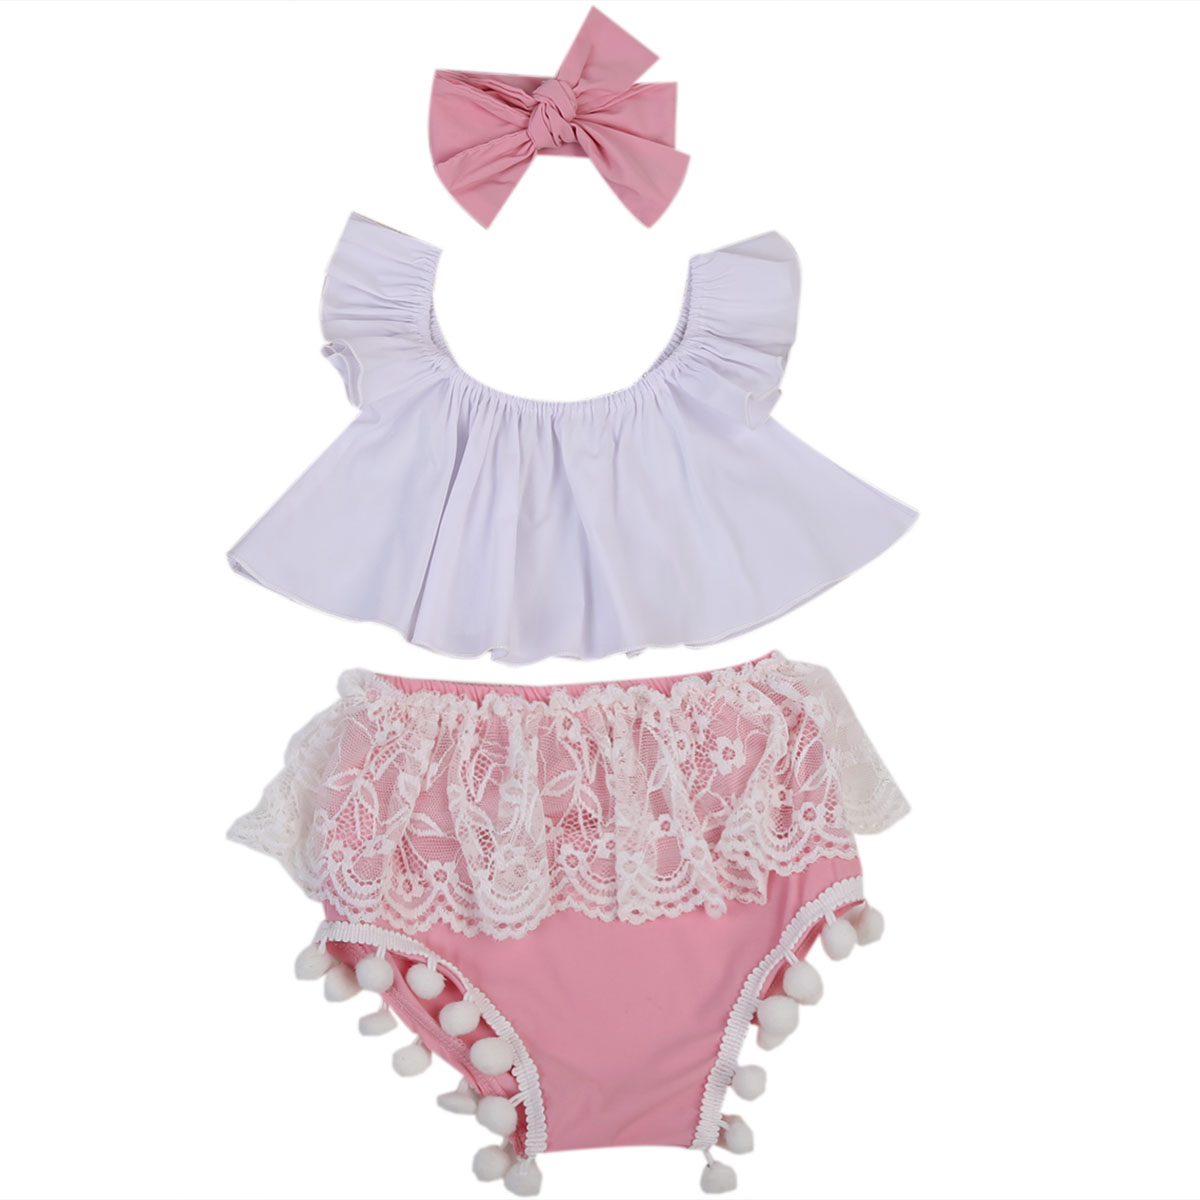 Summer Newborn Baby Girls Clothes Outfits Ruffle Crop Tops+Pink Lace Tassel Shorts 3PCS Set Cotton Toddler Infant Girls Clothing 0 24m floral baby girl clothes set 2017 summer sleeveless ruffles crop tops baby bloomers shorts 2pcs outfits children sunsuit